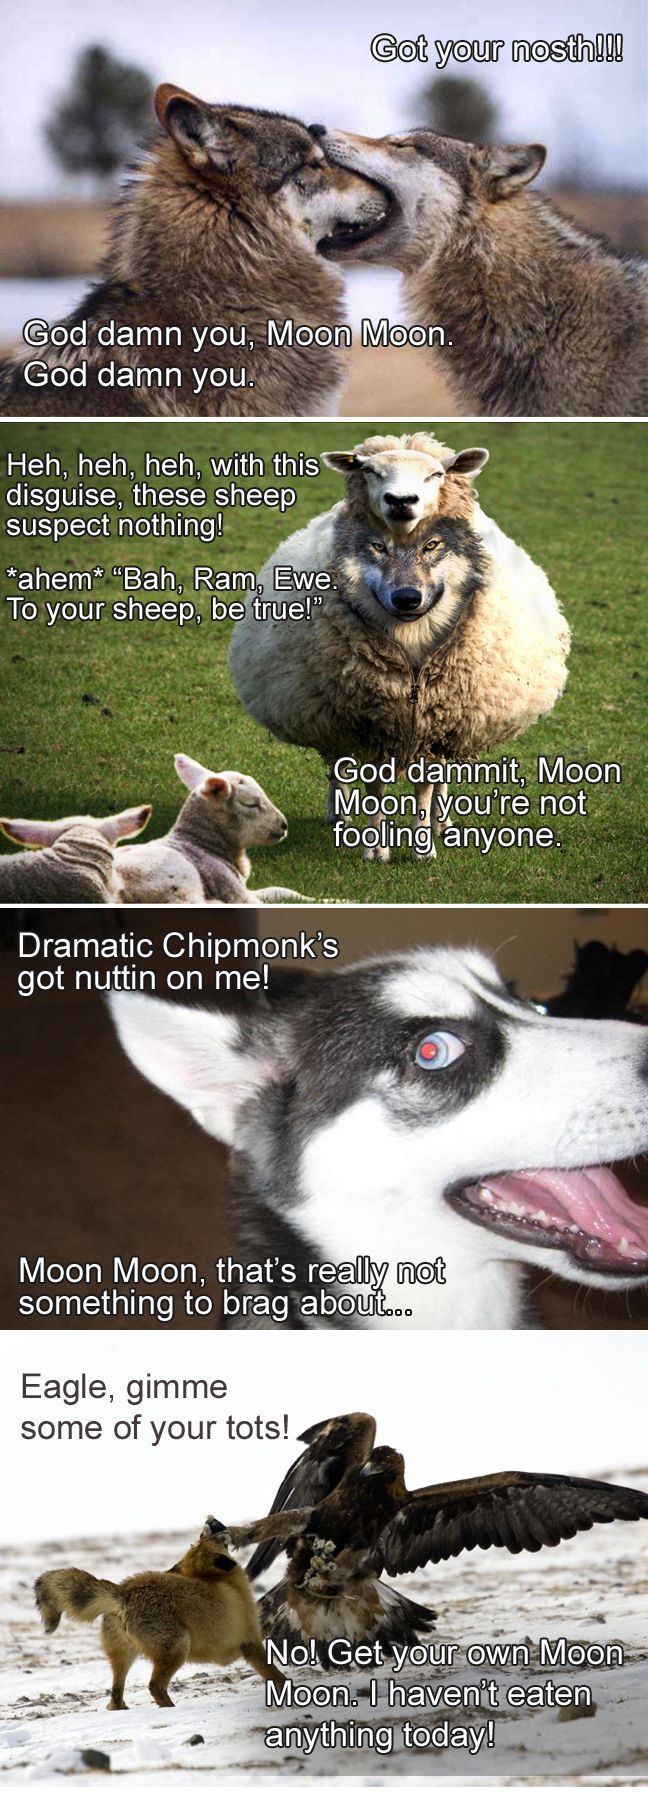 I couldn't resist making my own Moon Moon memes haha #werewolf_name @Yui Sehara @Aylee Mac